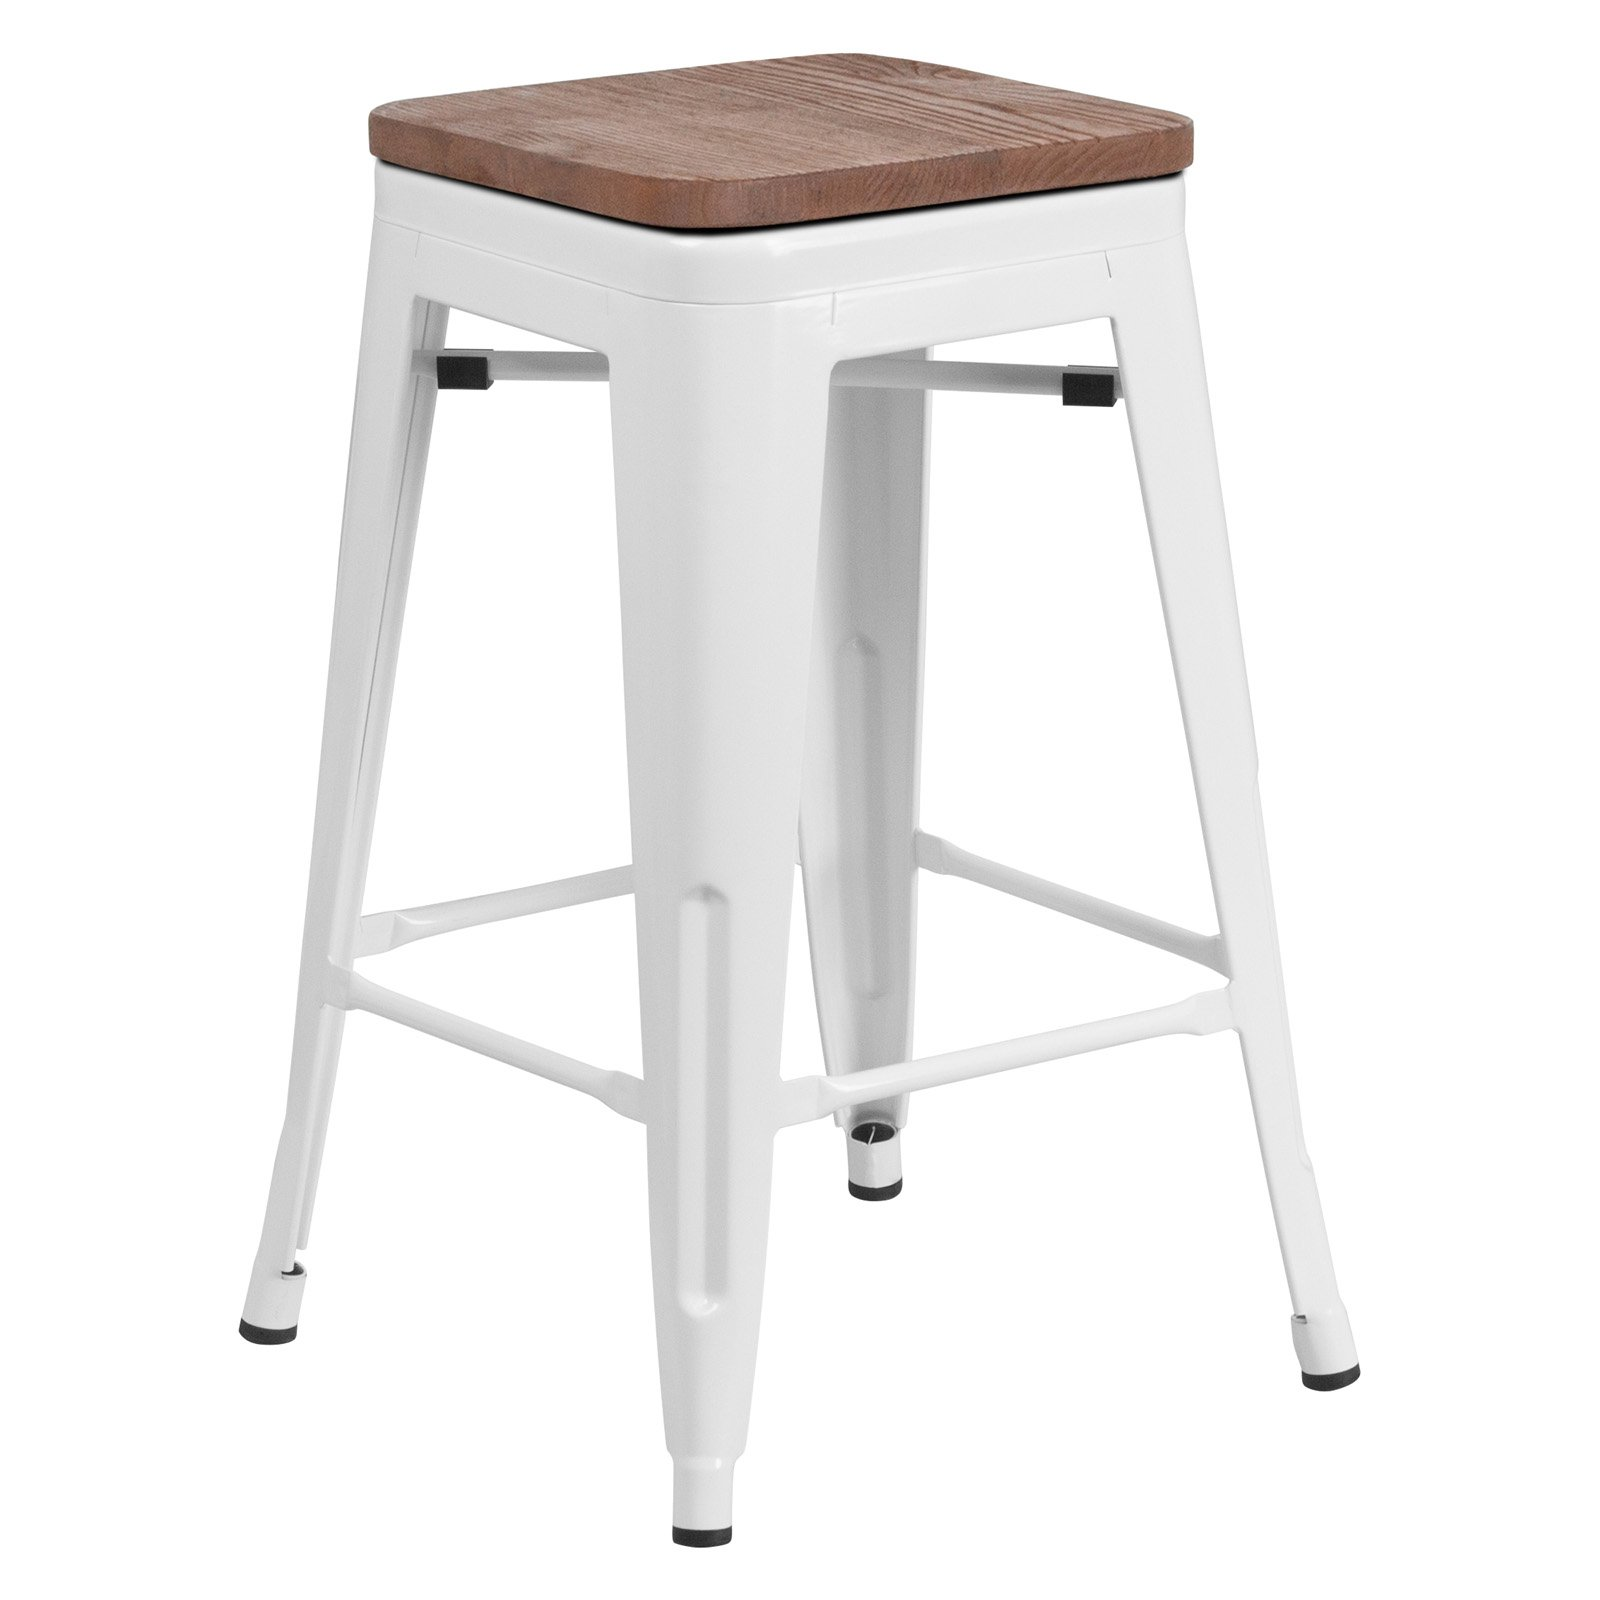 Awesome Flash Furniture Metal Backless 24 In Wooden Seat Counter Short Links Chair Design For Home Short Linksinfo